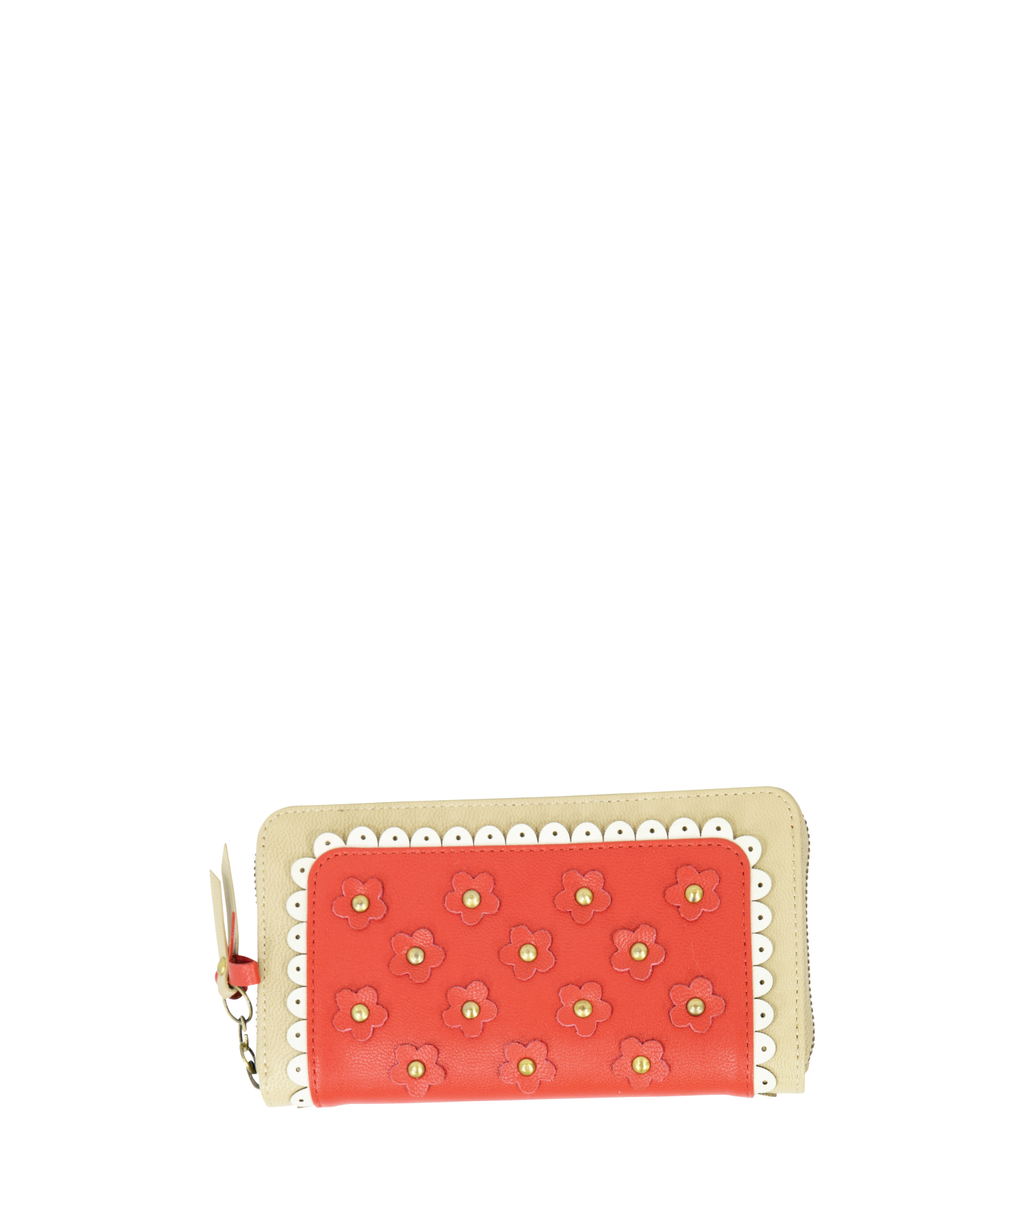 GILDA Wallet - Poppy